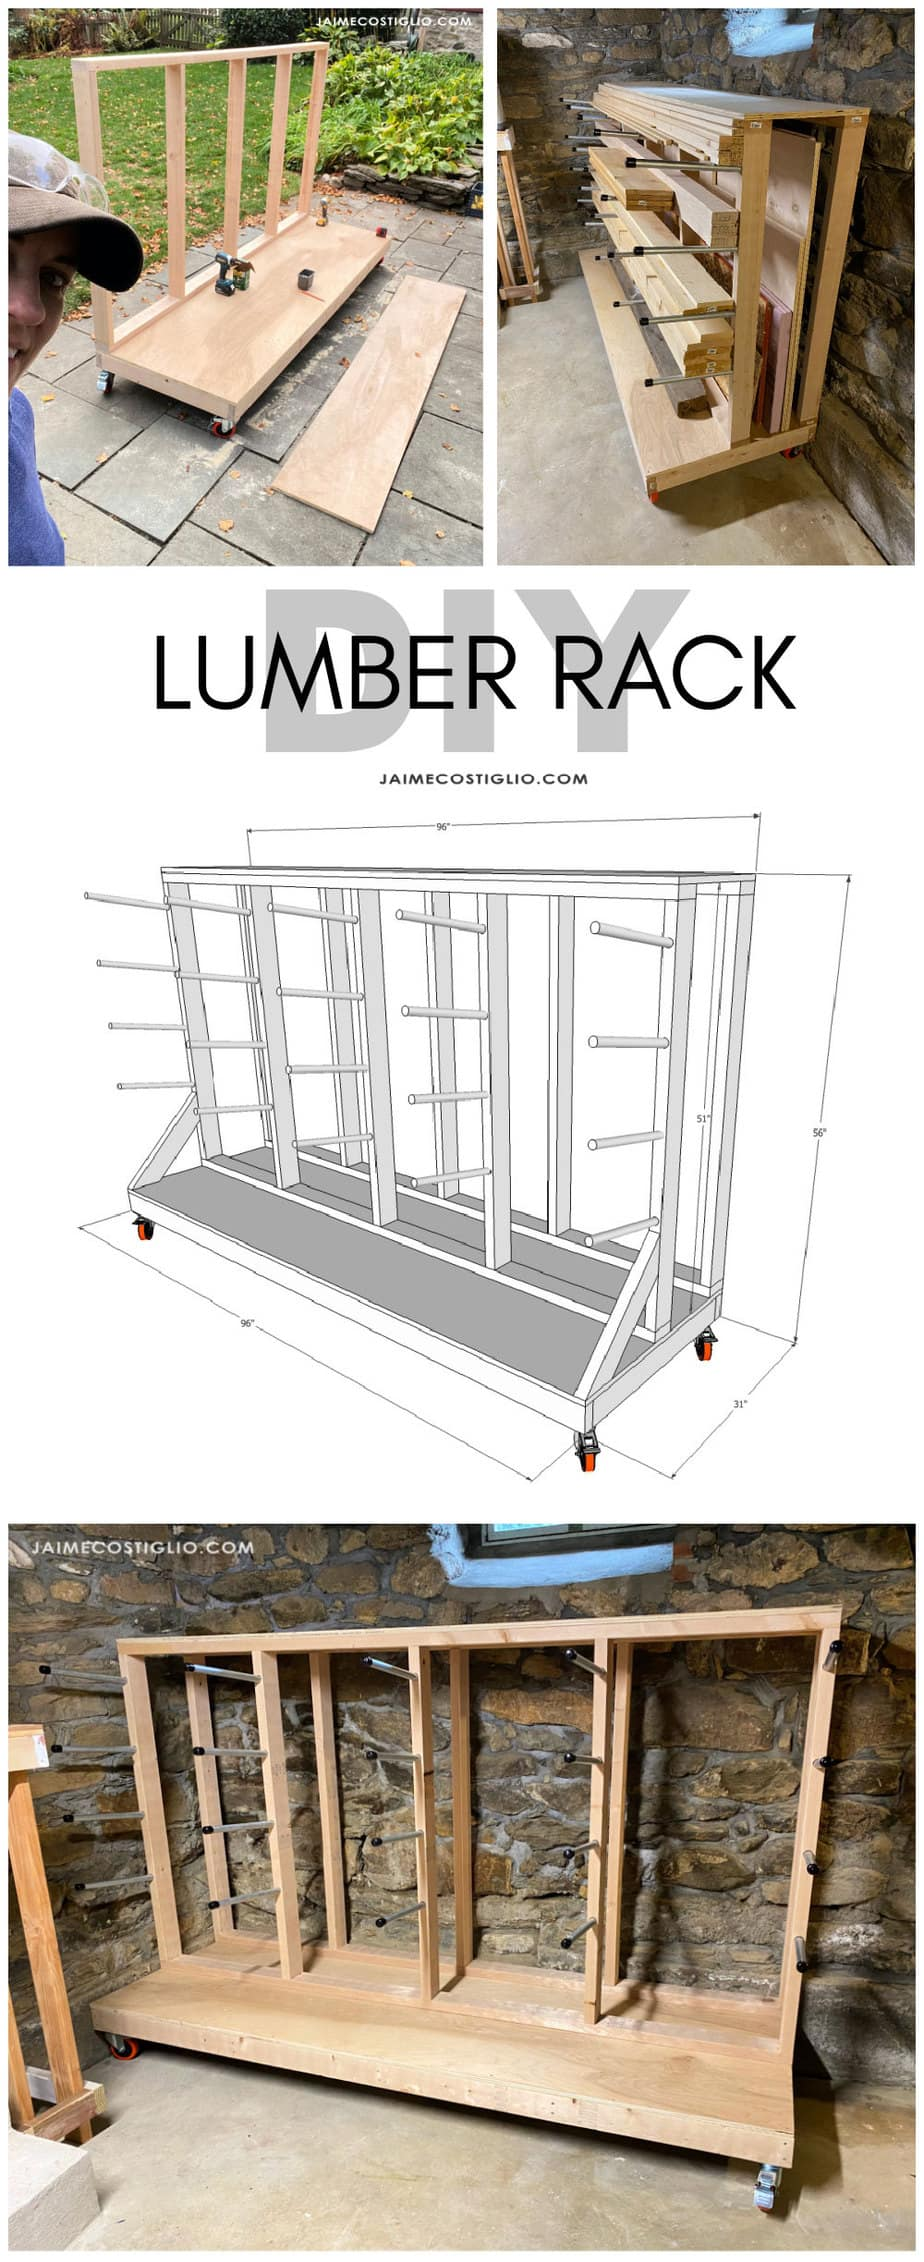 diy lumber storage rack plans